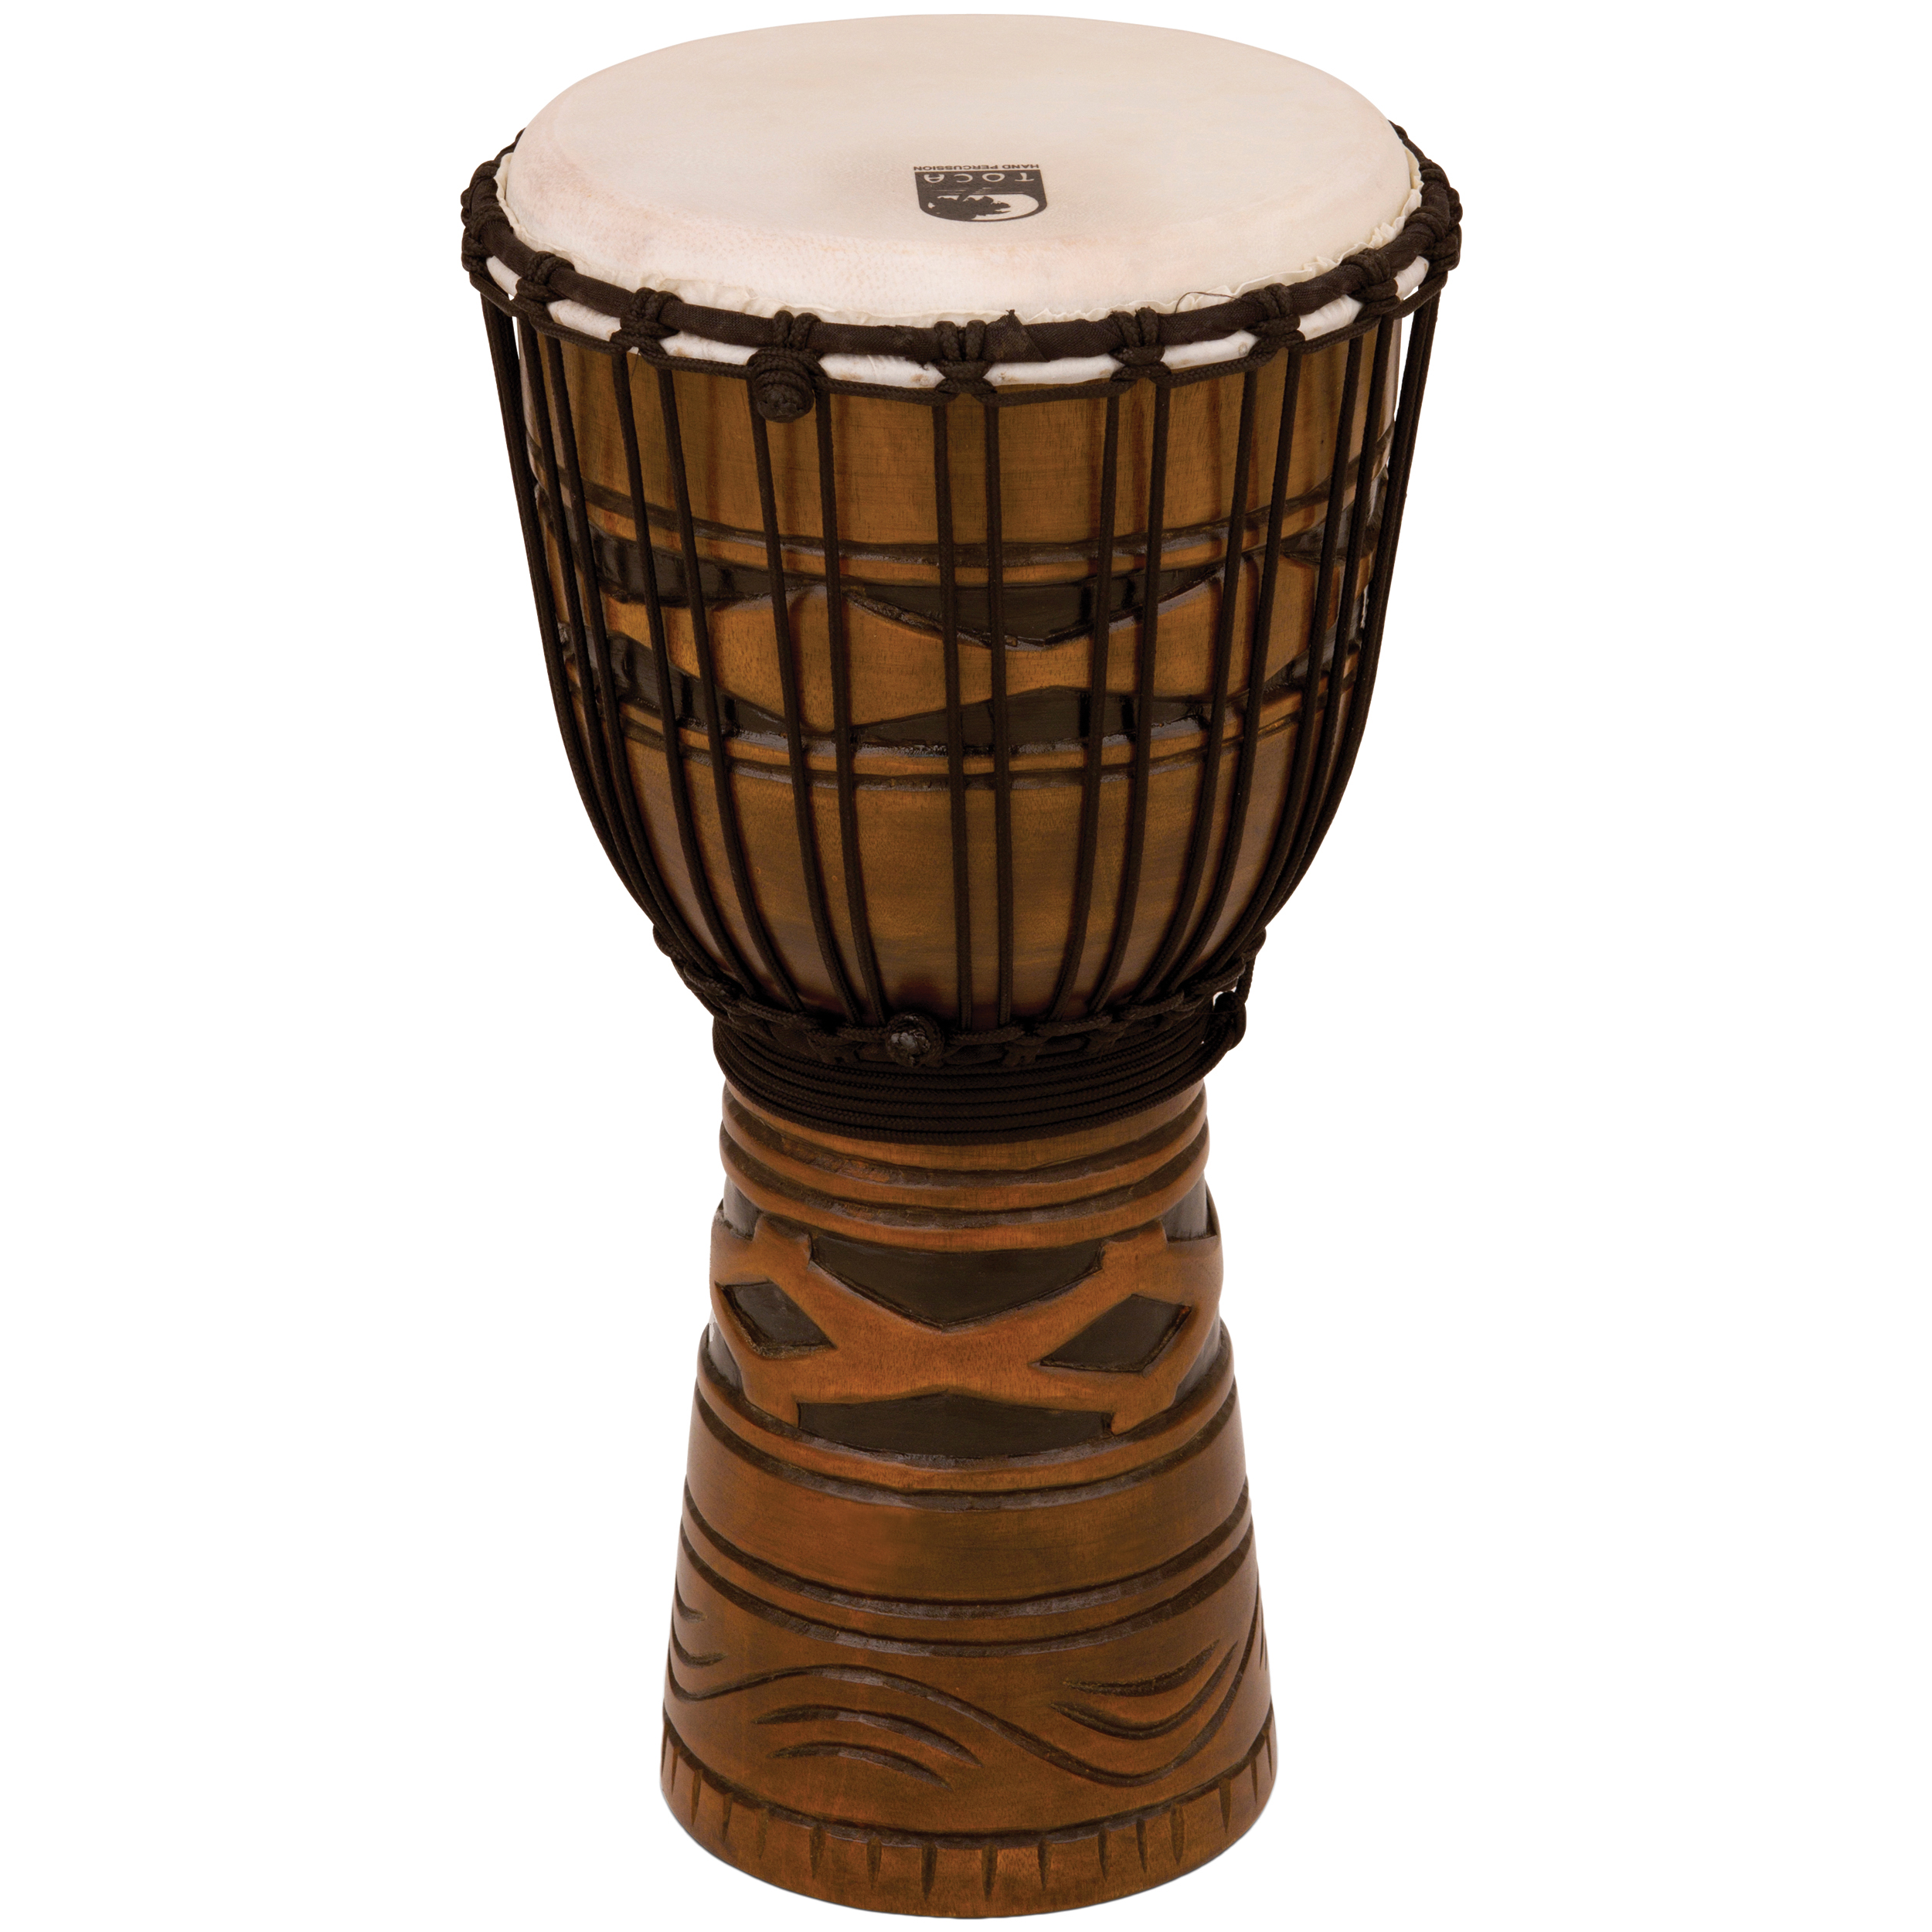 "Toca 12"" Origins Wood Djembe"